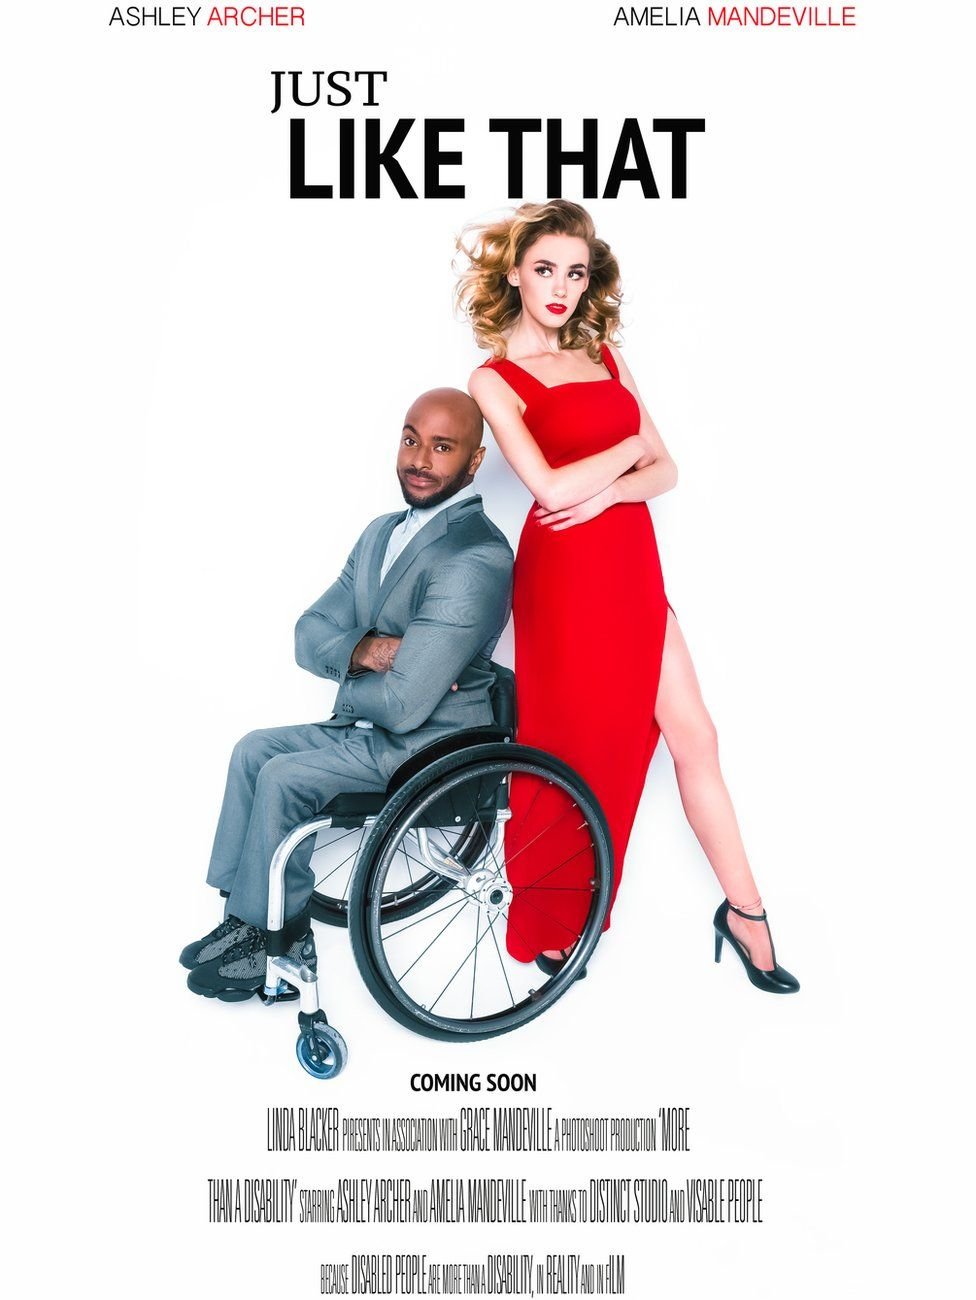 Ashley Archer and Amelia Mandeville pose for a rom-com film poster with Ashley in a wheelchair